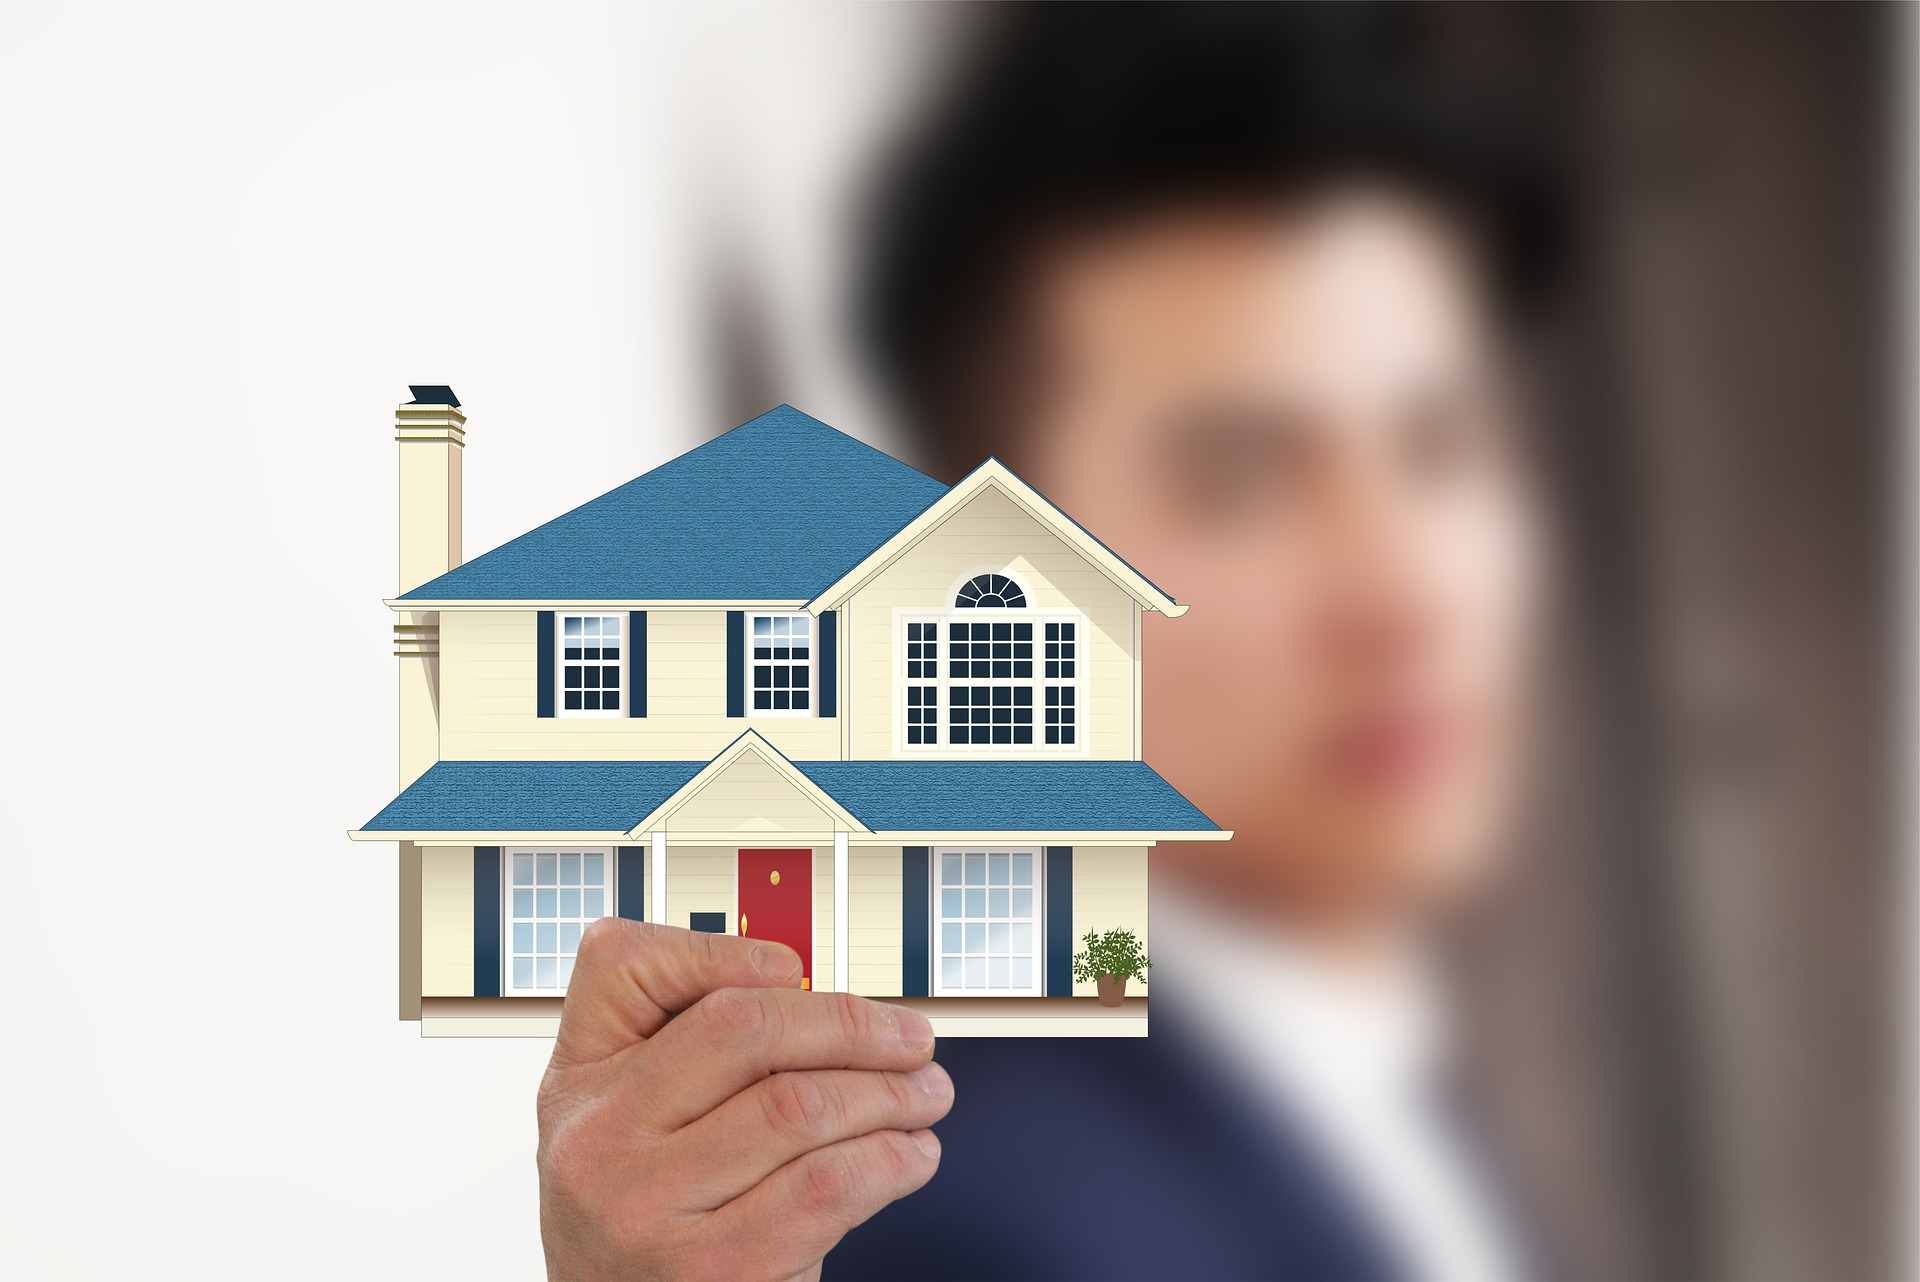 Selective focus of man holding a miniature house